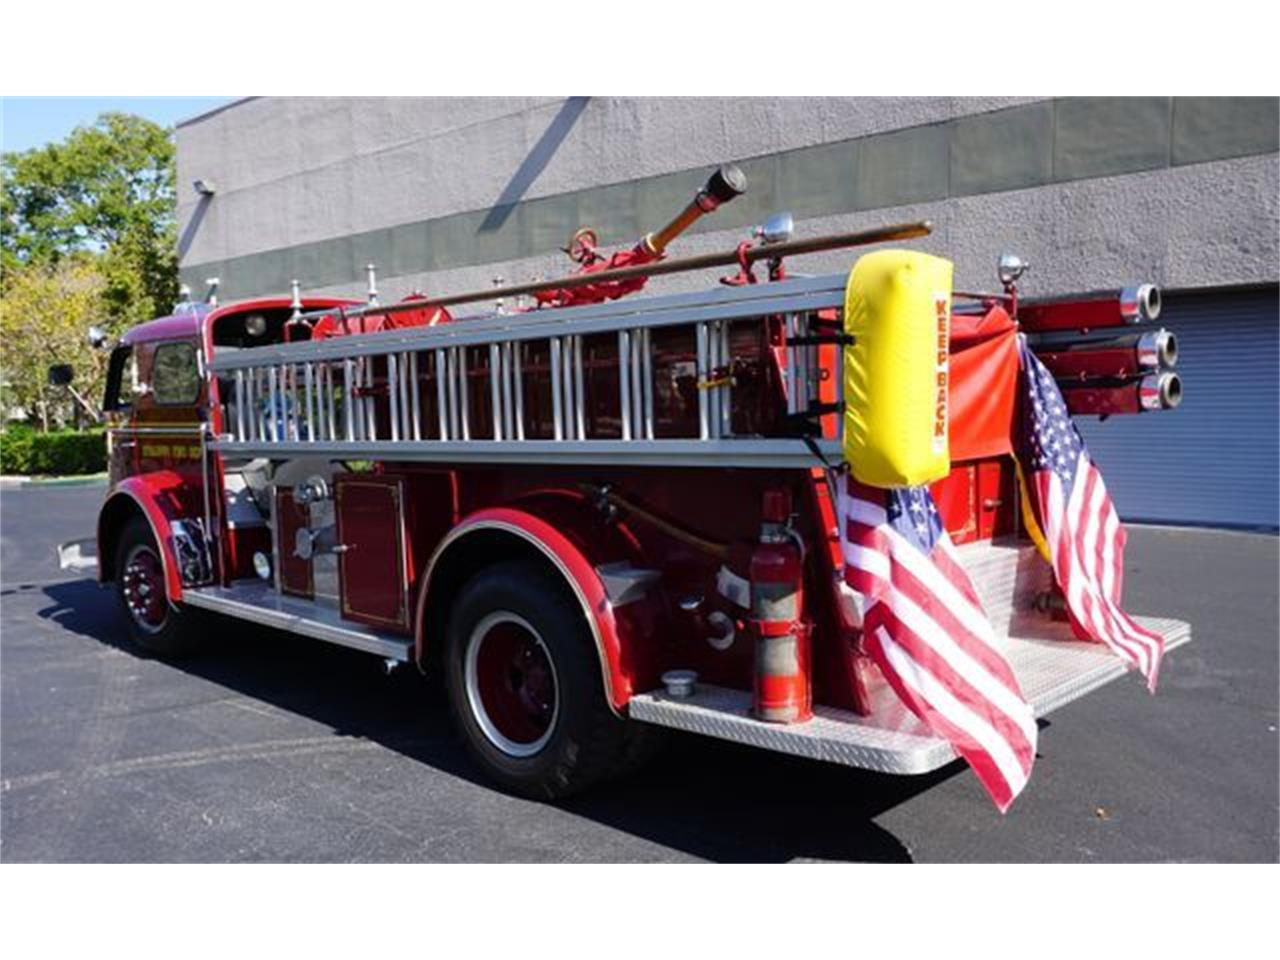 Large Picture of 1953 American LaFrance Fire Engine - $69,000.00 - O4GG